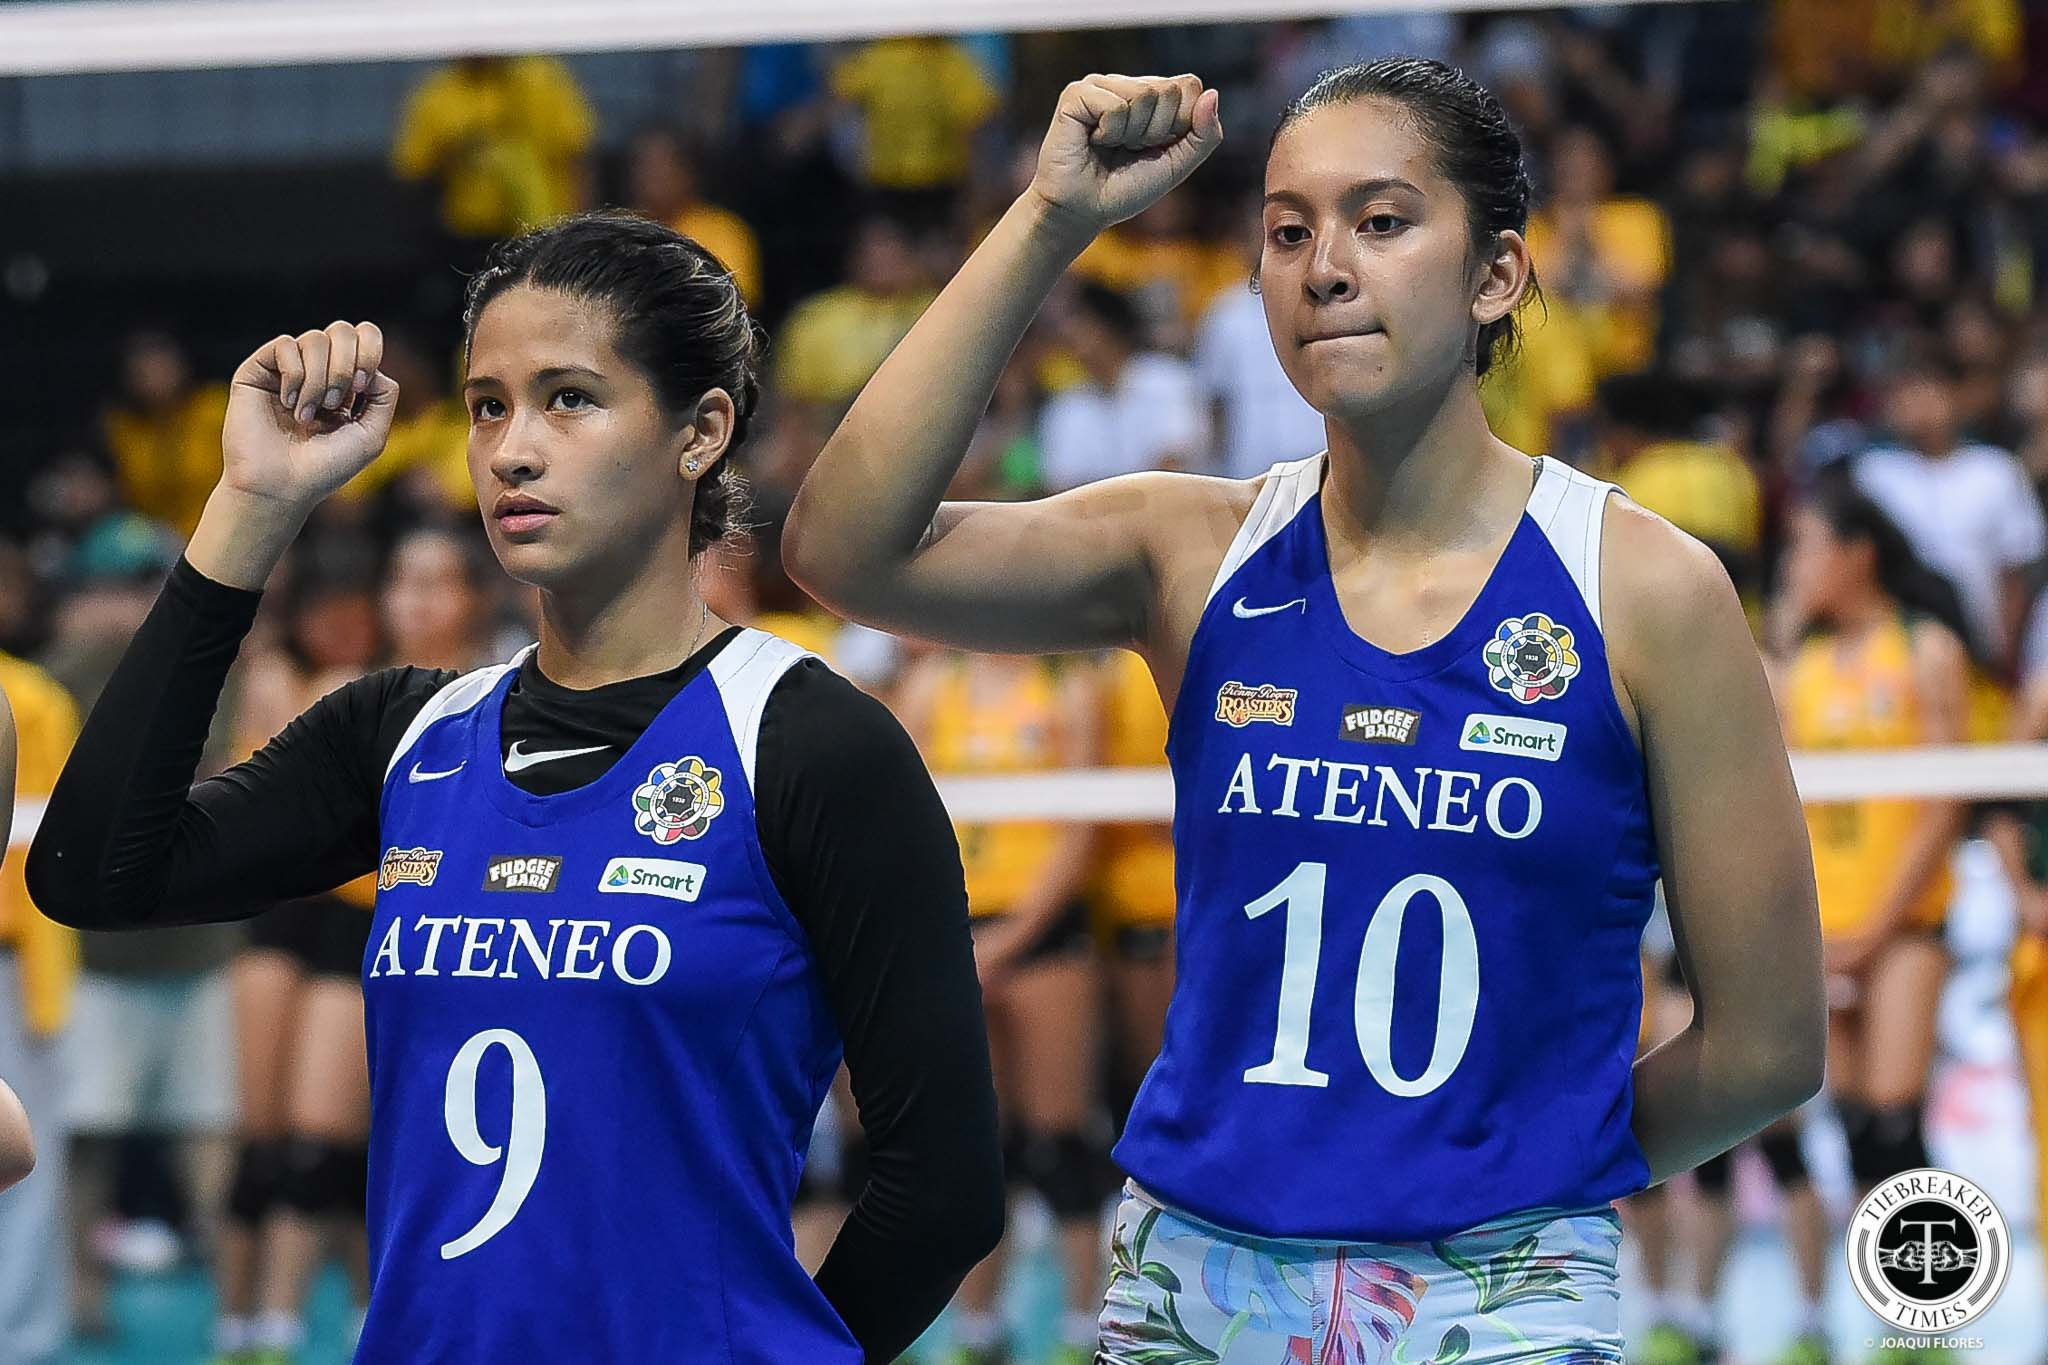 Tiebreaker Times Kat Tolentino returns for Ateneo's UAAP Season 82 campaign ADMU News UAAP Volleyball  UAAP Season 82 Women's Volleyball UAAP Season 82 Kat Tolentino Ateneo Women's Volleyball